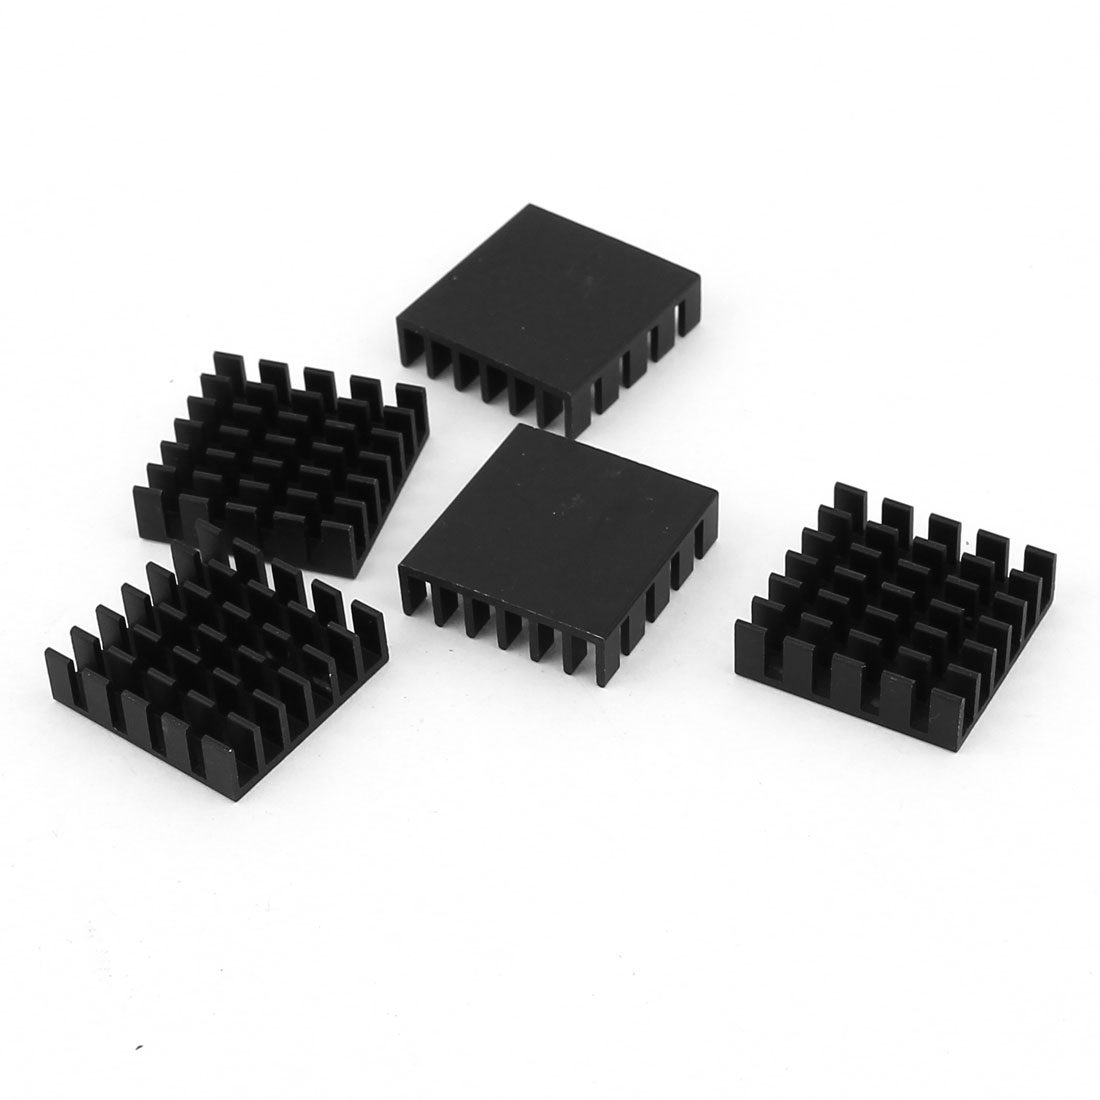 5 Pcs Black Aluminum Cooler Radiator Heat Sink Heatsink 20mm x 20mm x 6mm